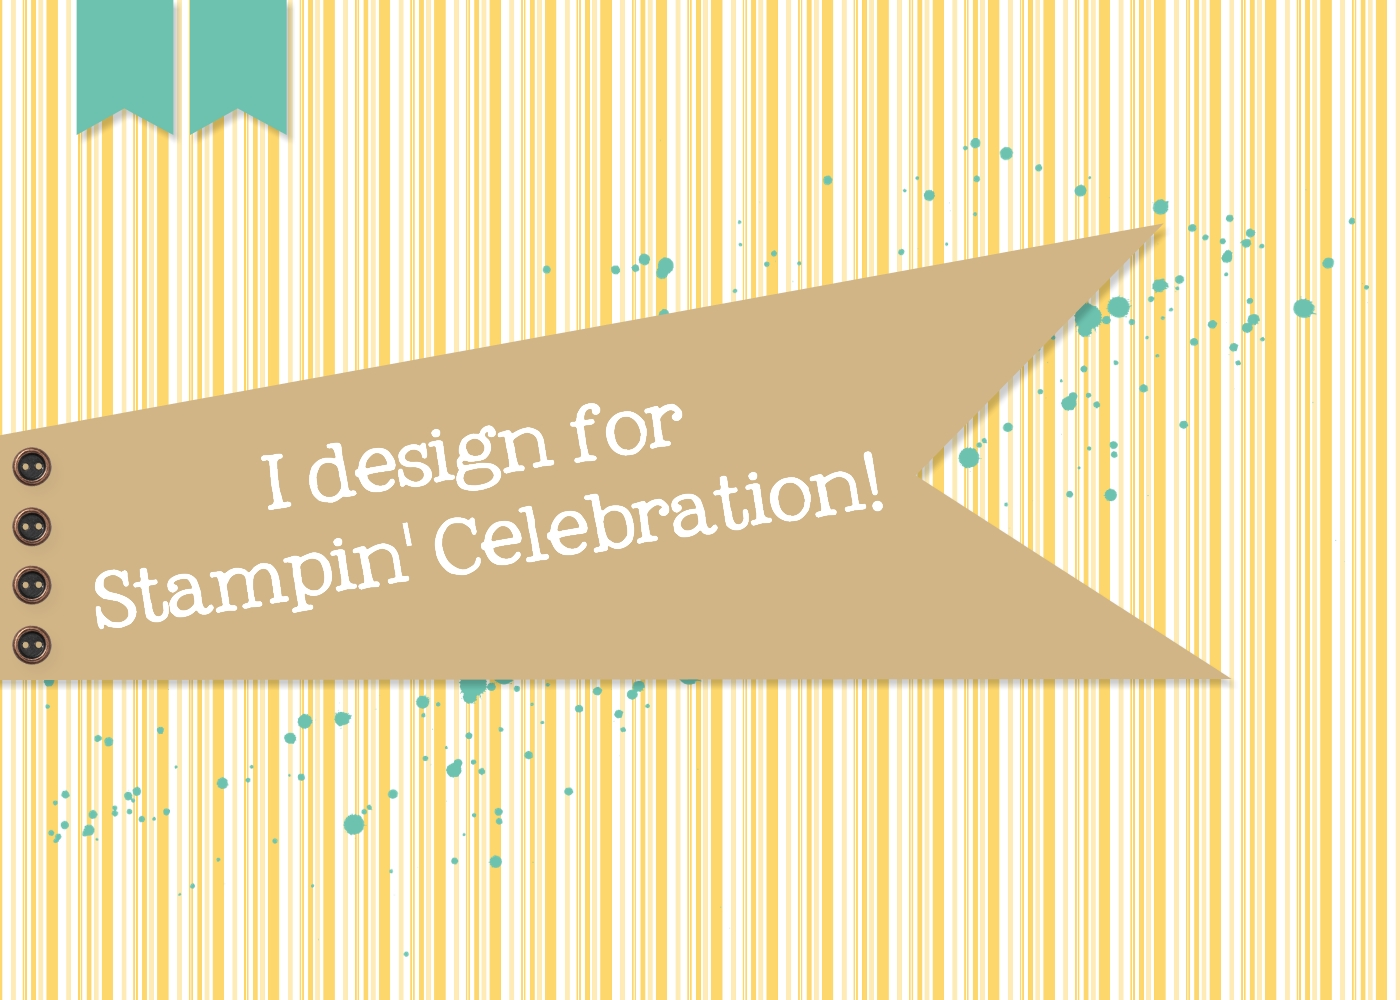 Stampin'Celebration Designer Badge